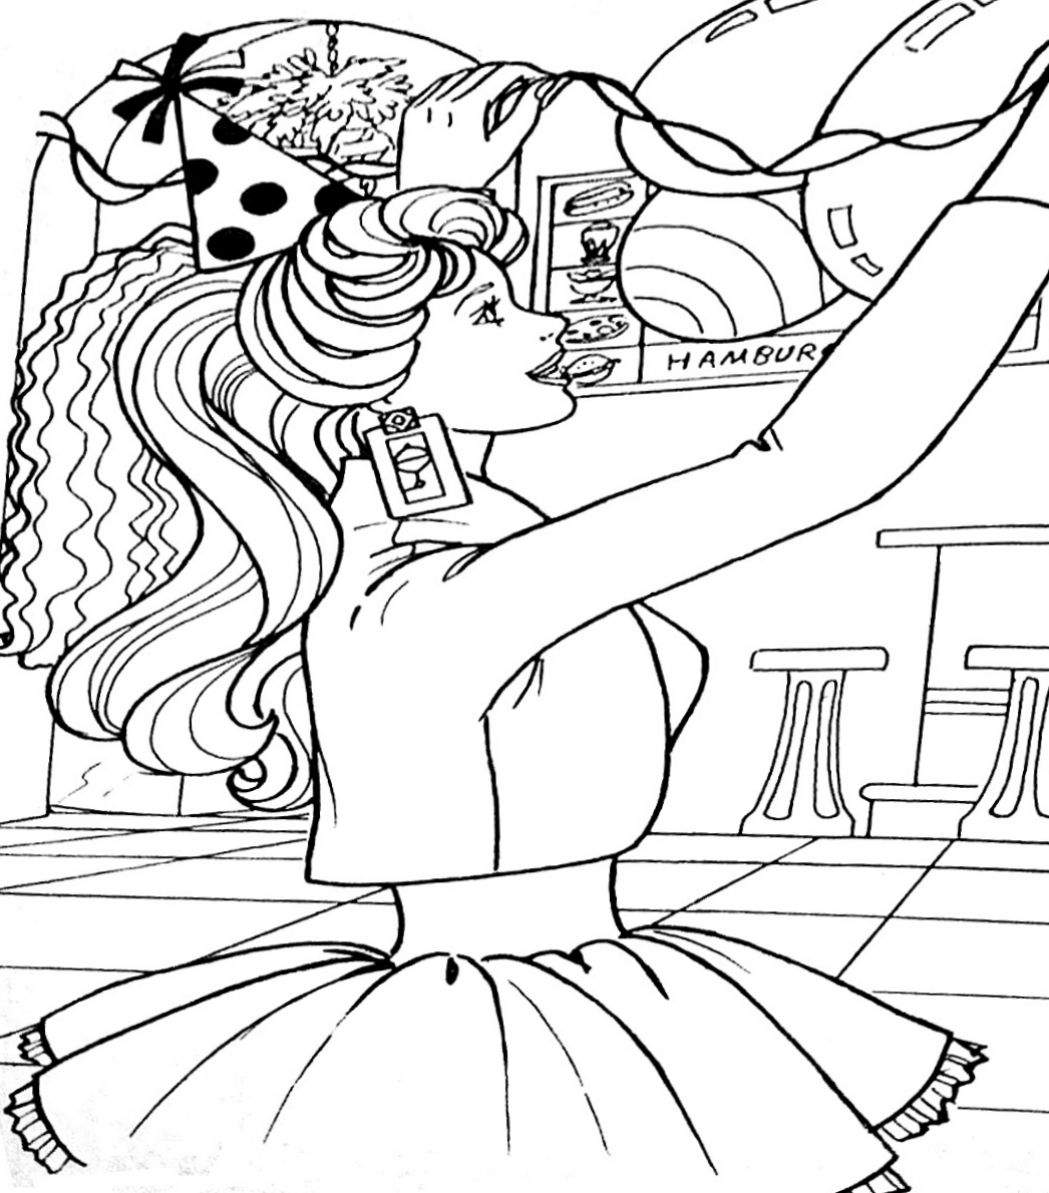 Pin by Tsvetelina on Barbie coloring (With images